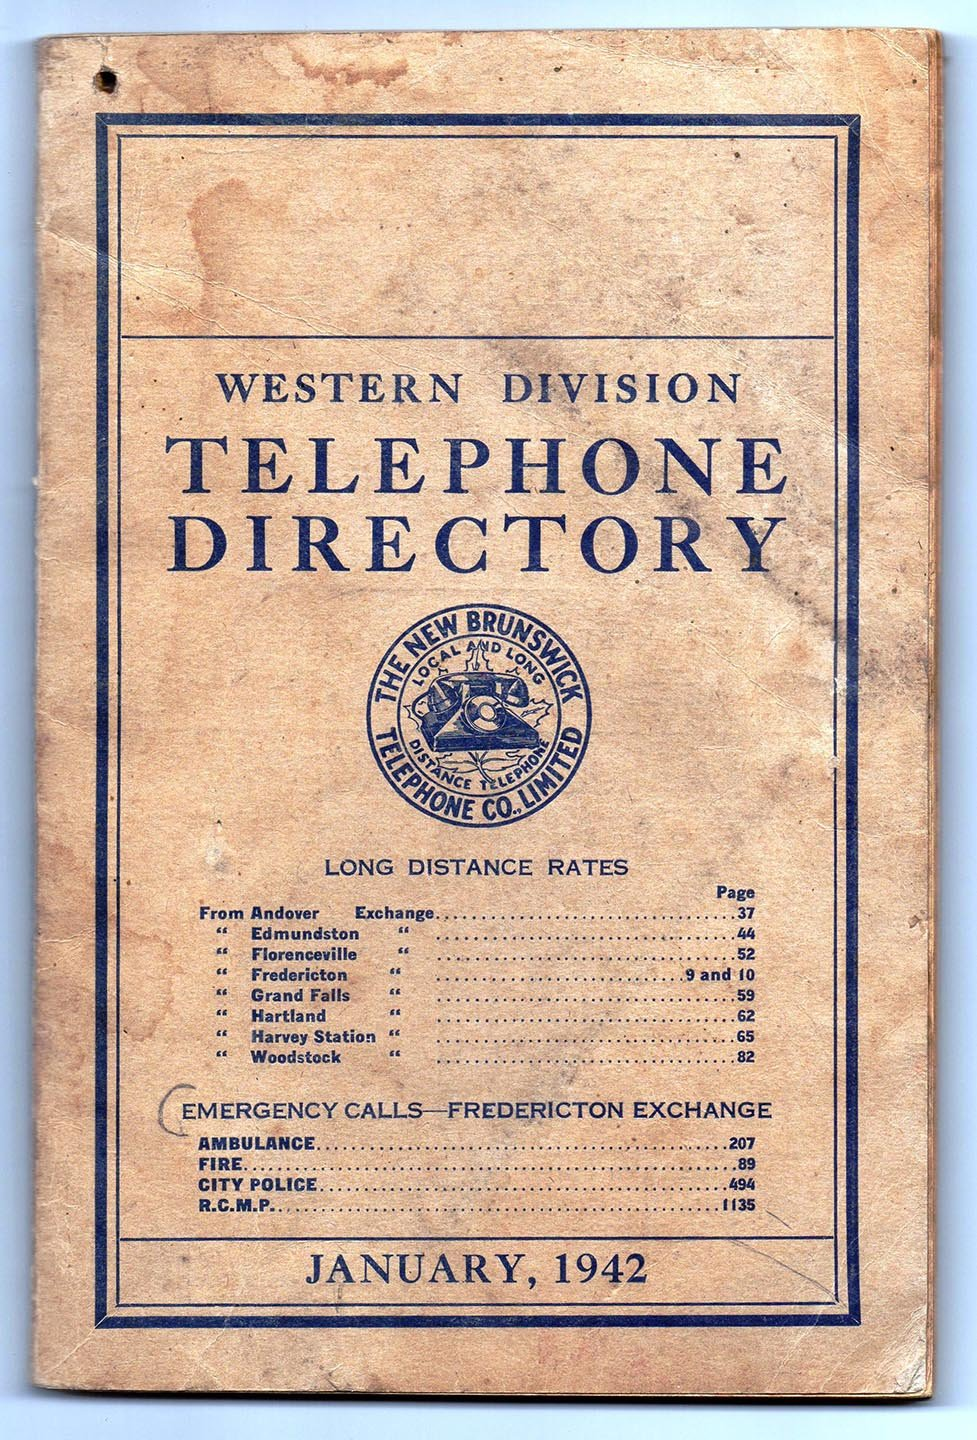 Western Division Telephone Directory January, 1942